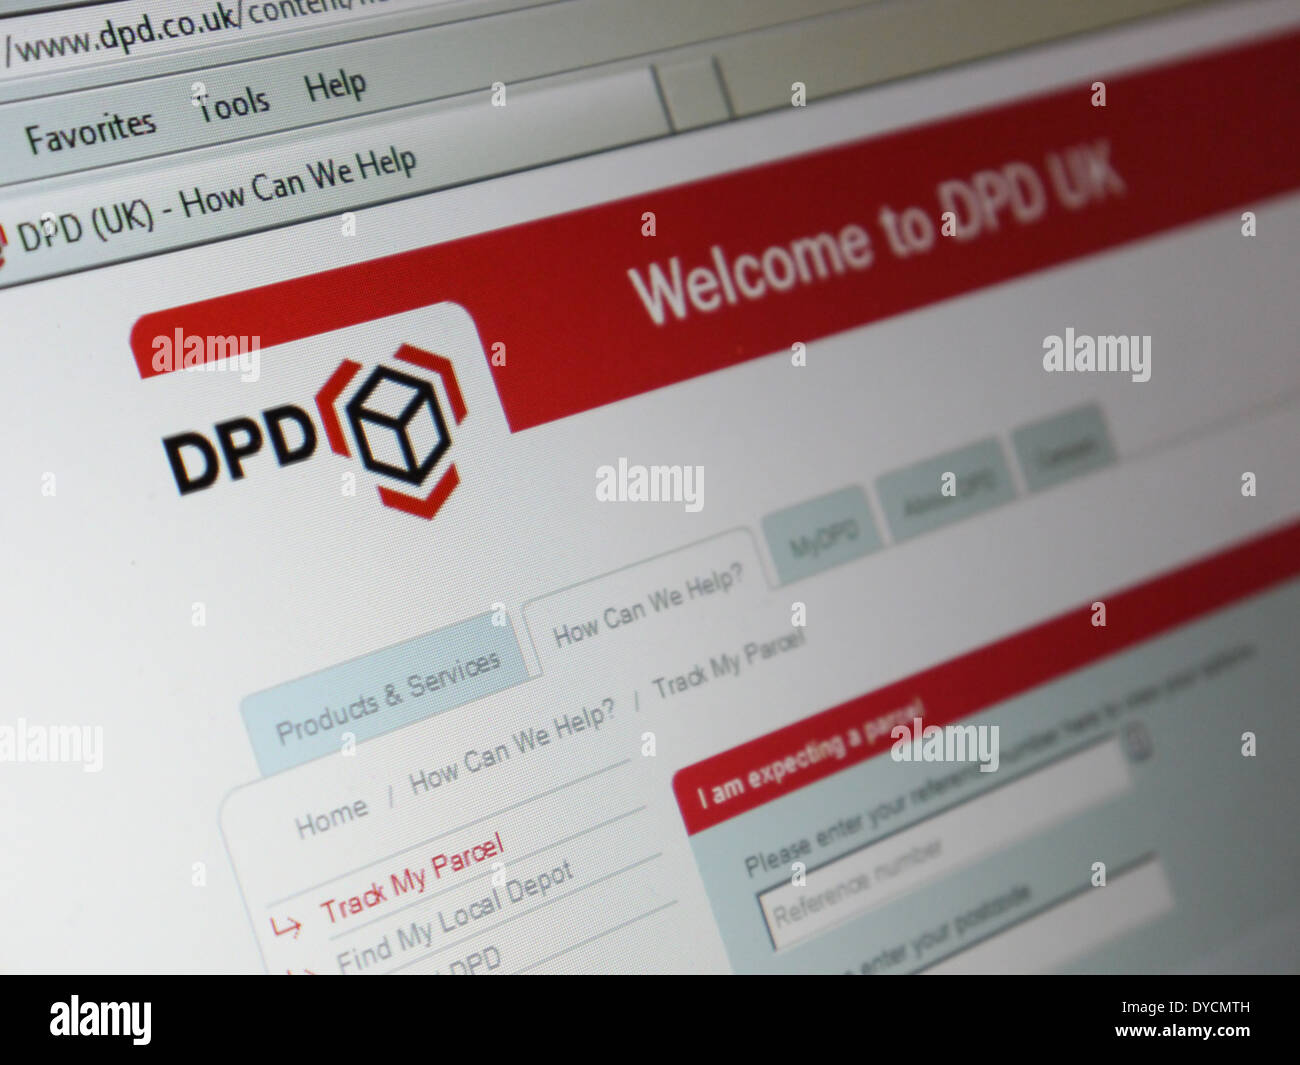 Dpd Stock Photos & Dpd Stock Images - Alamy